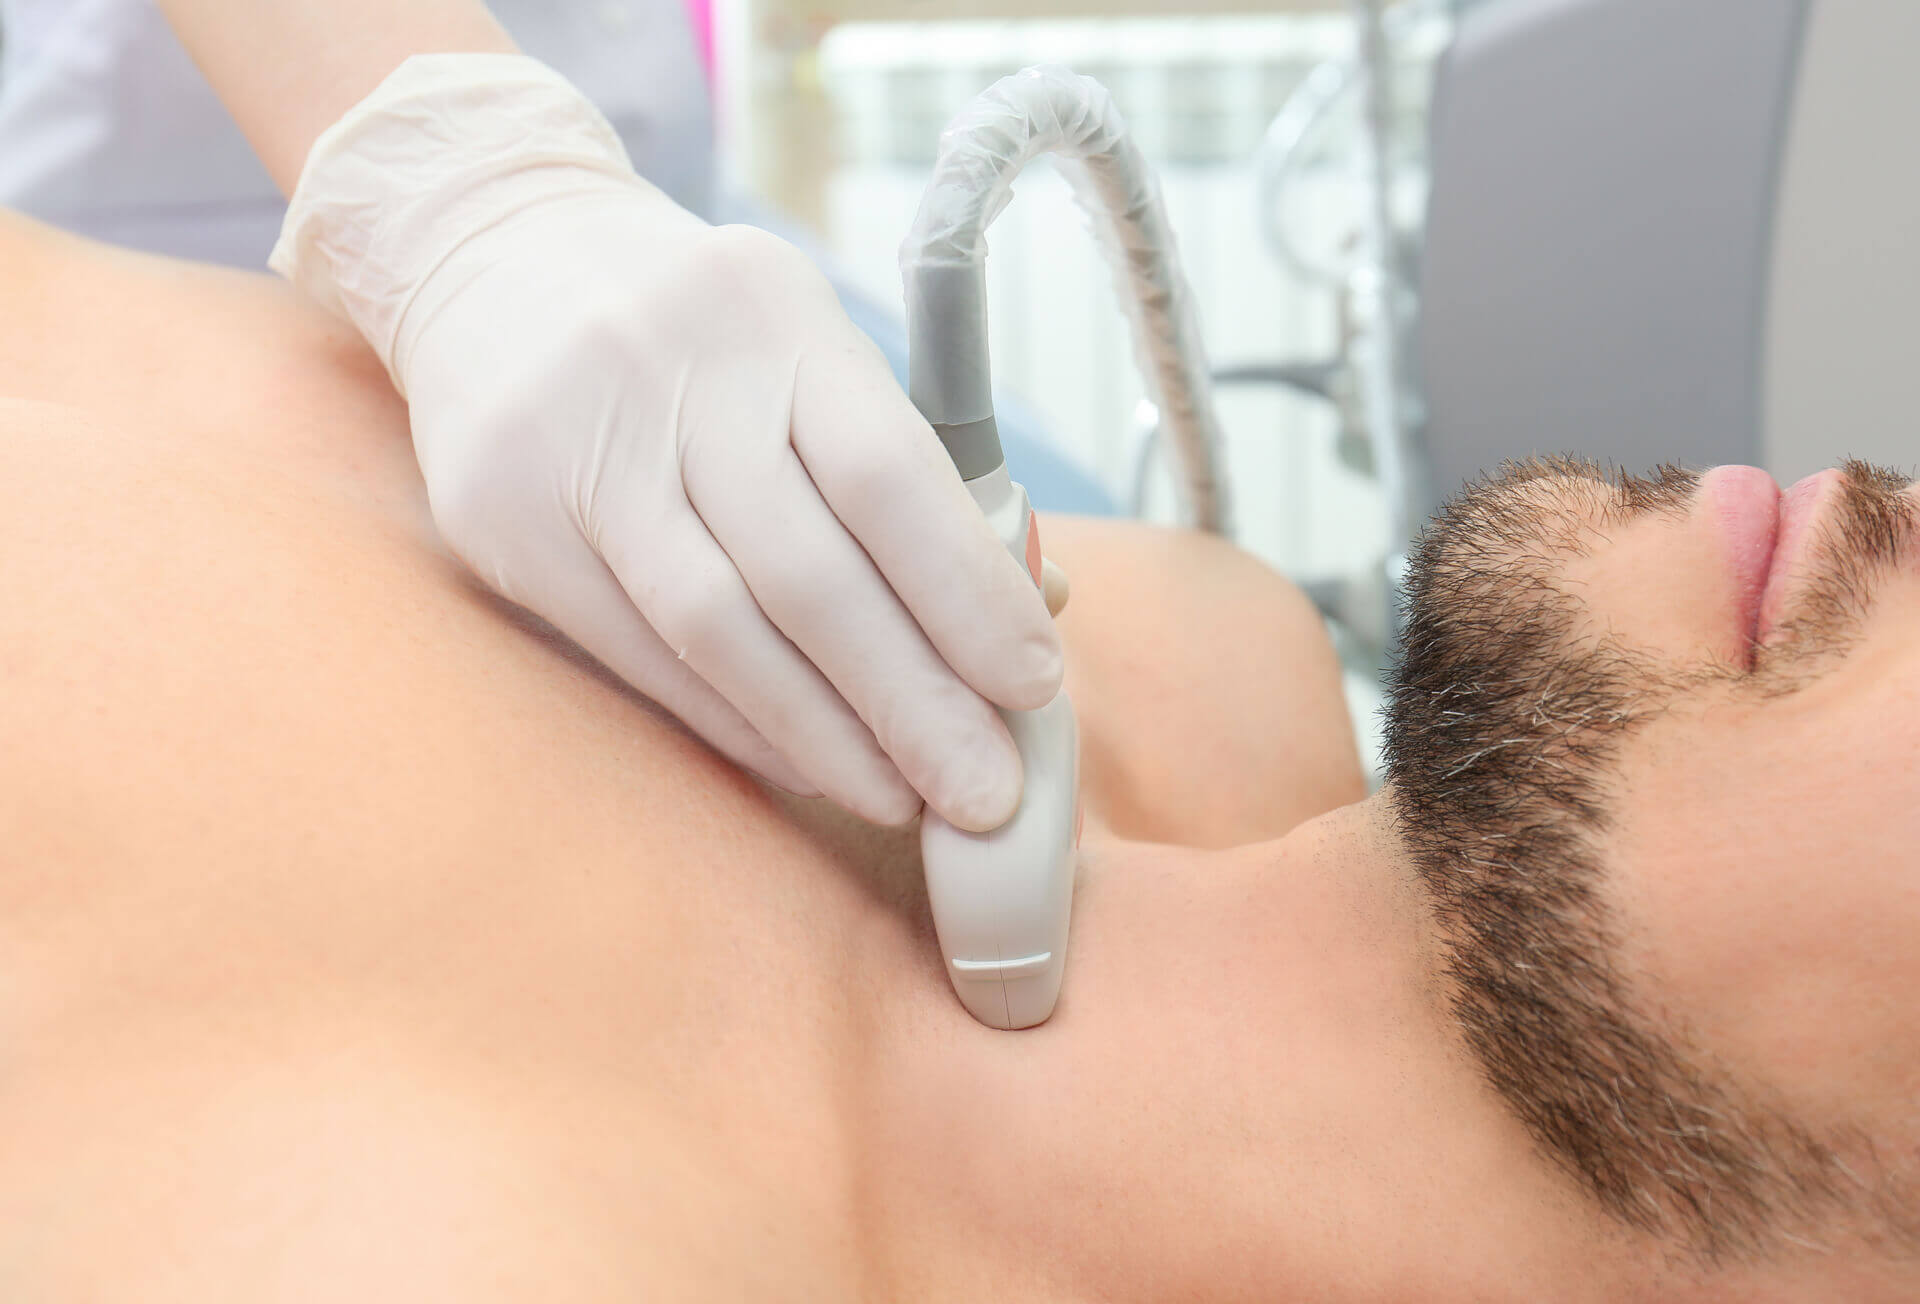 scanning neck with the machine